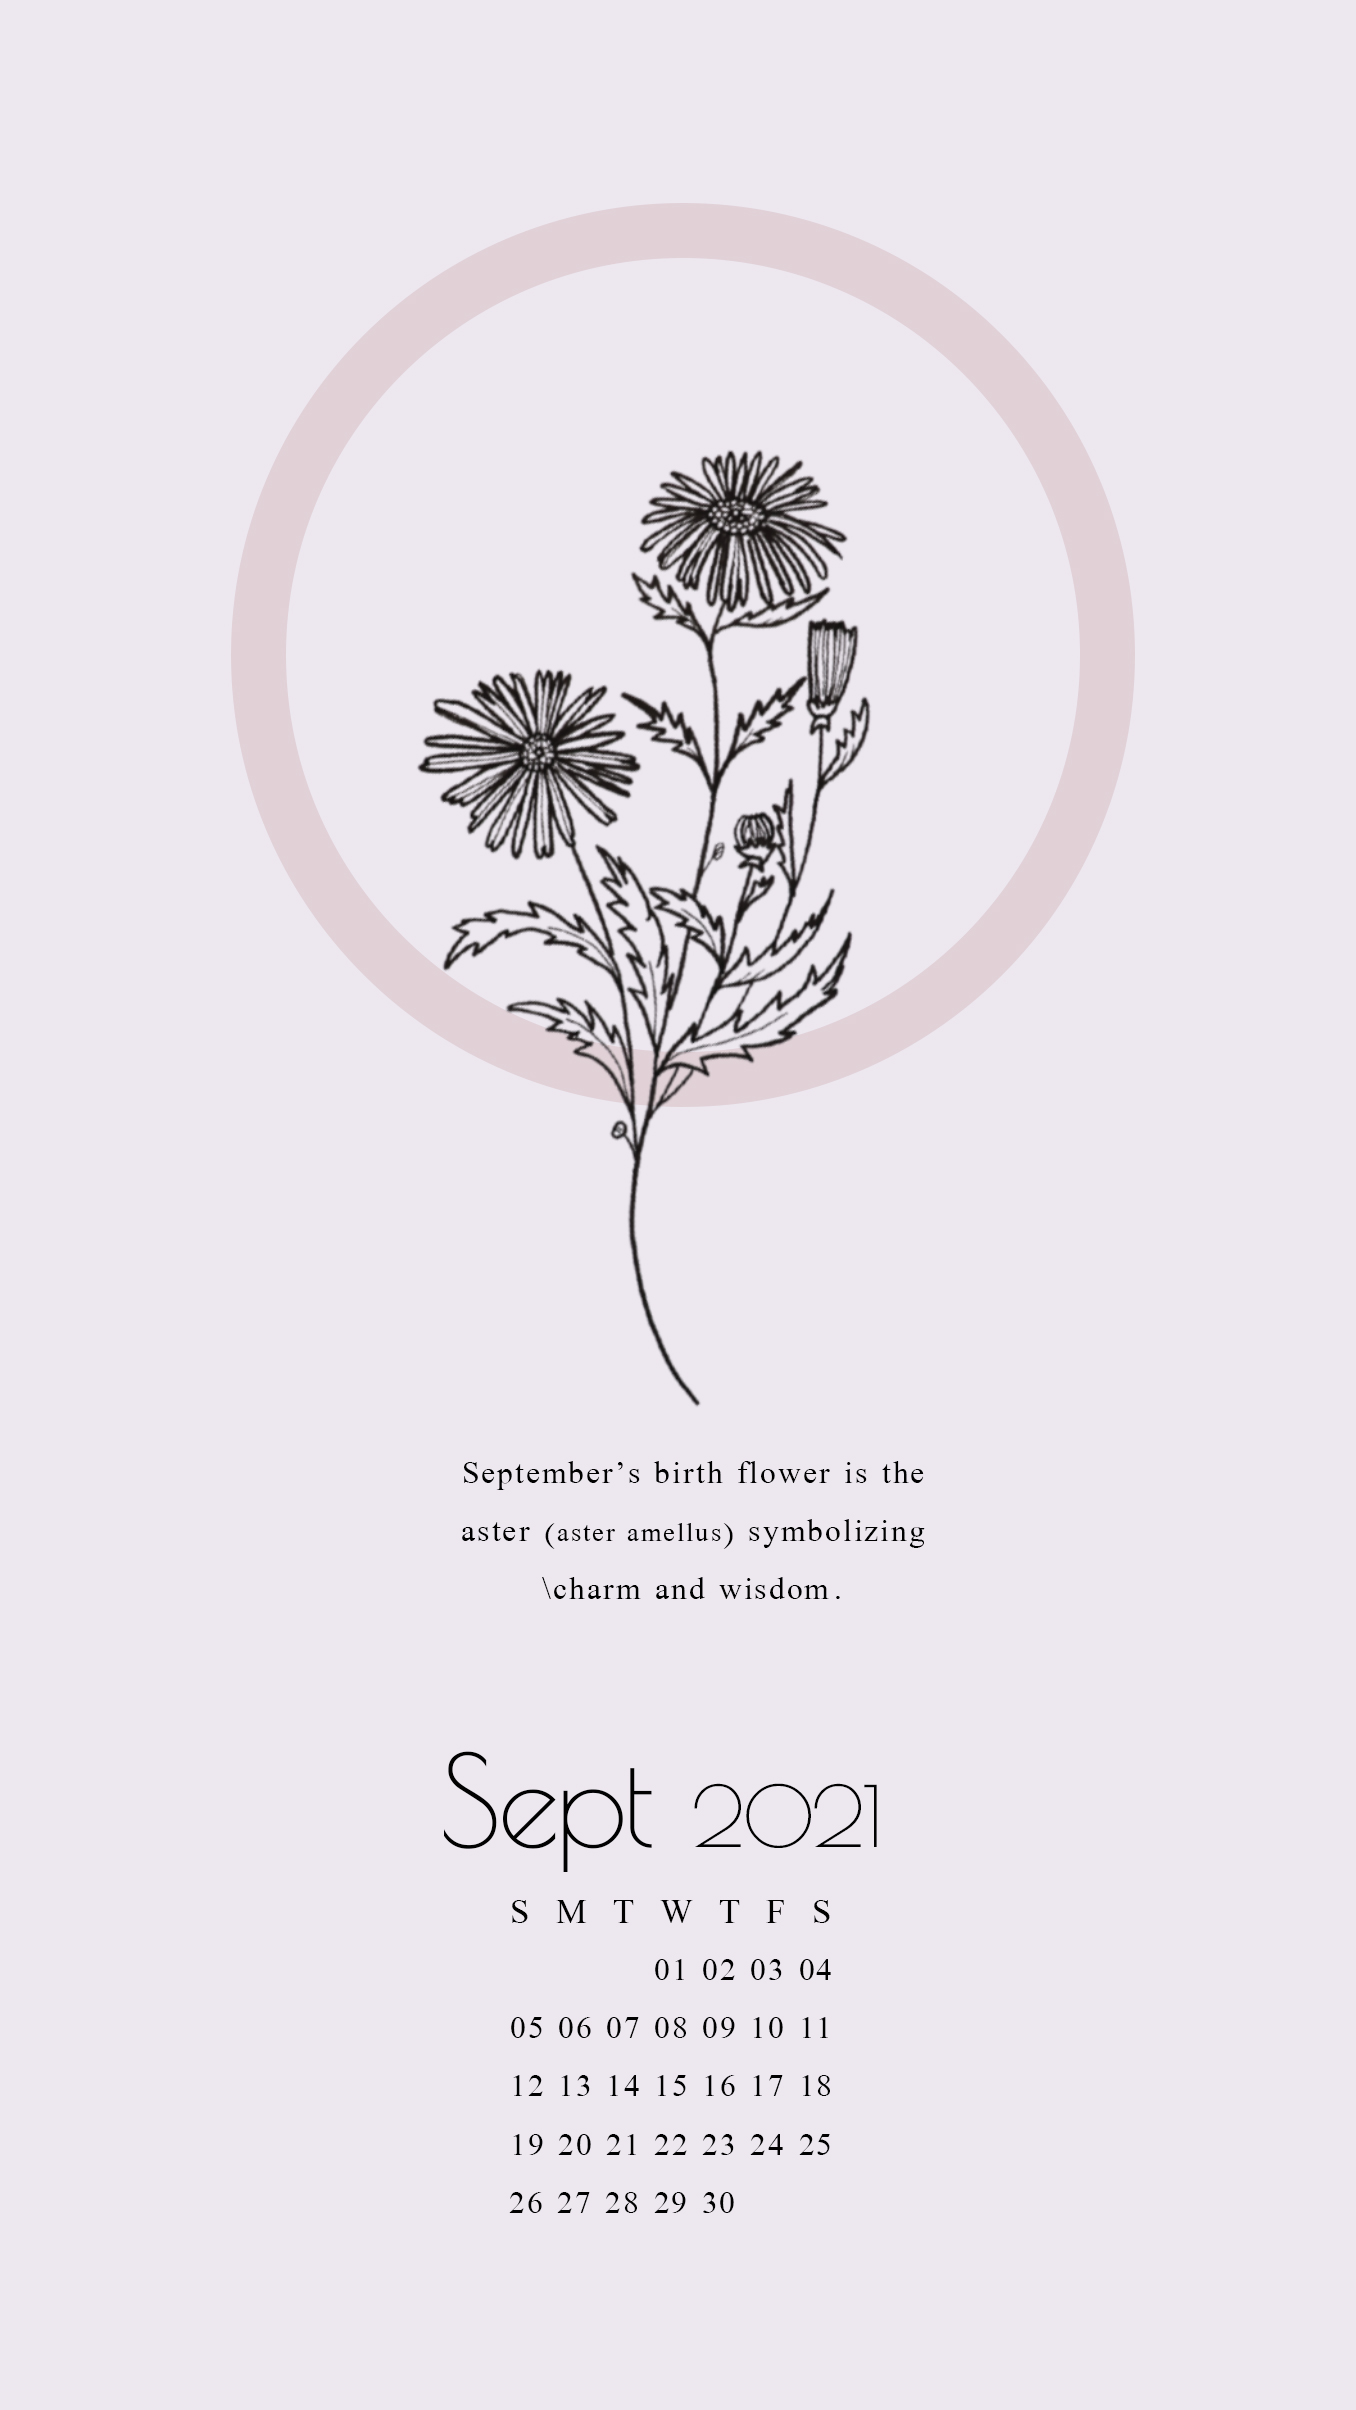 september 2021 calendar wallpaper for iphone